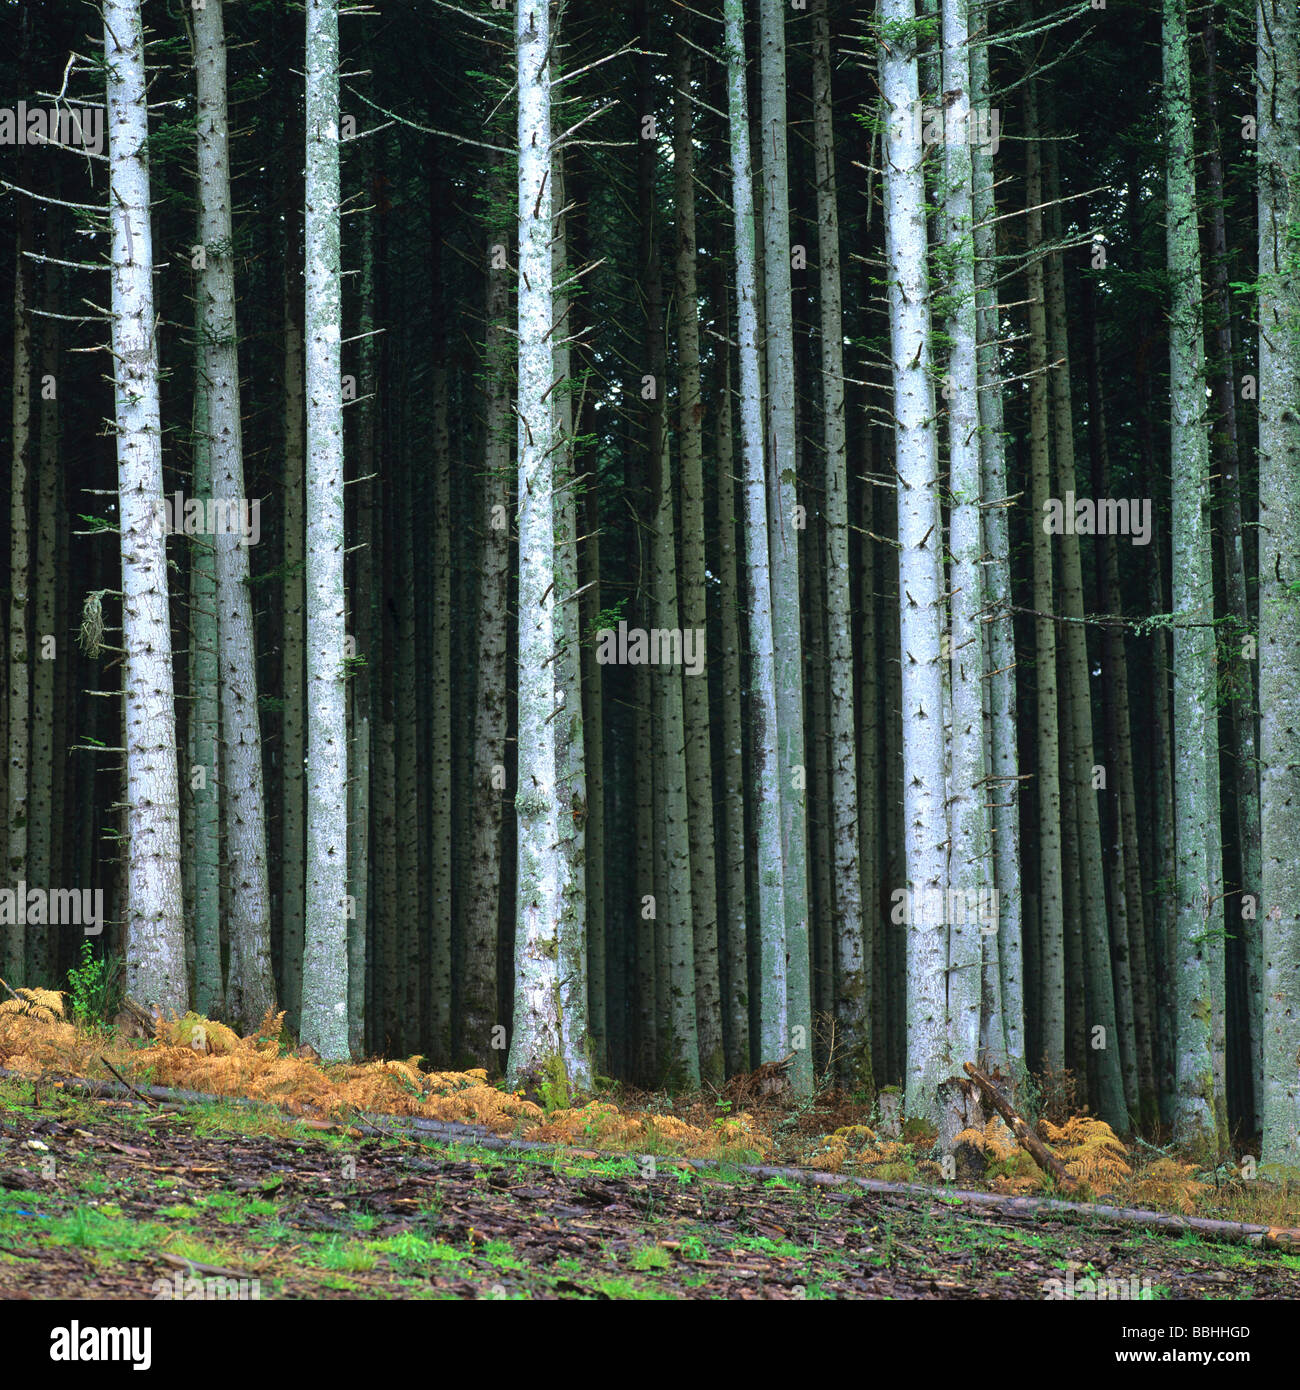 Forest of fir trees. - Stock Image